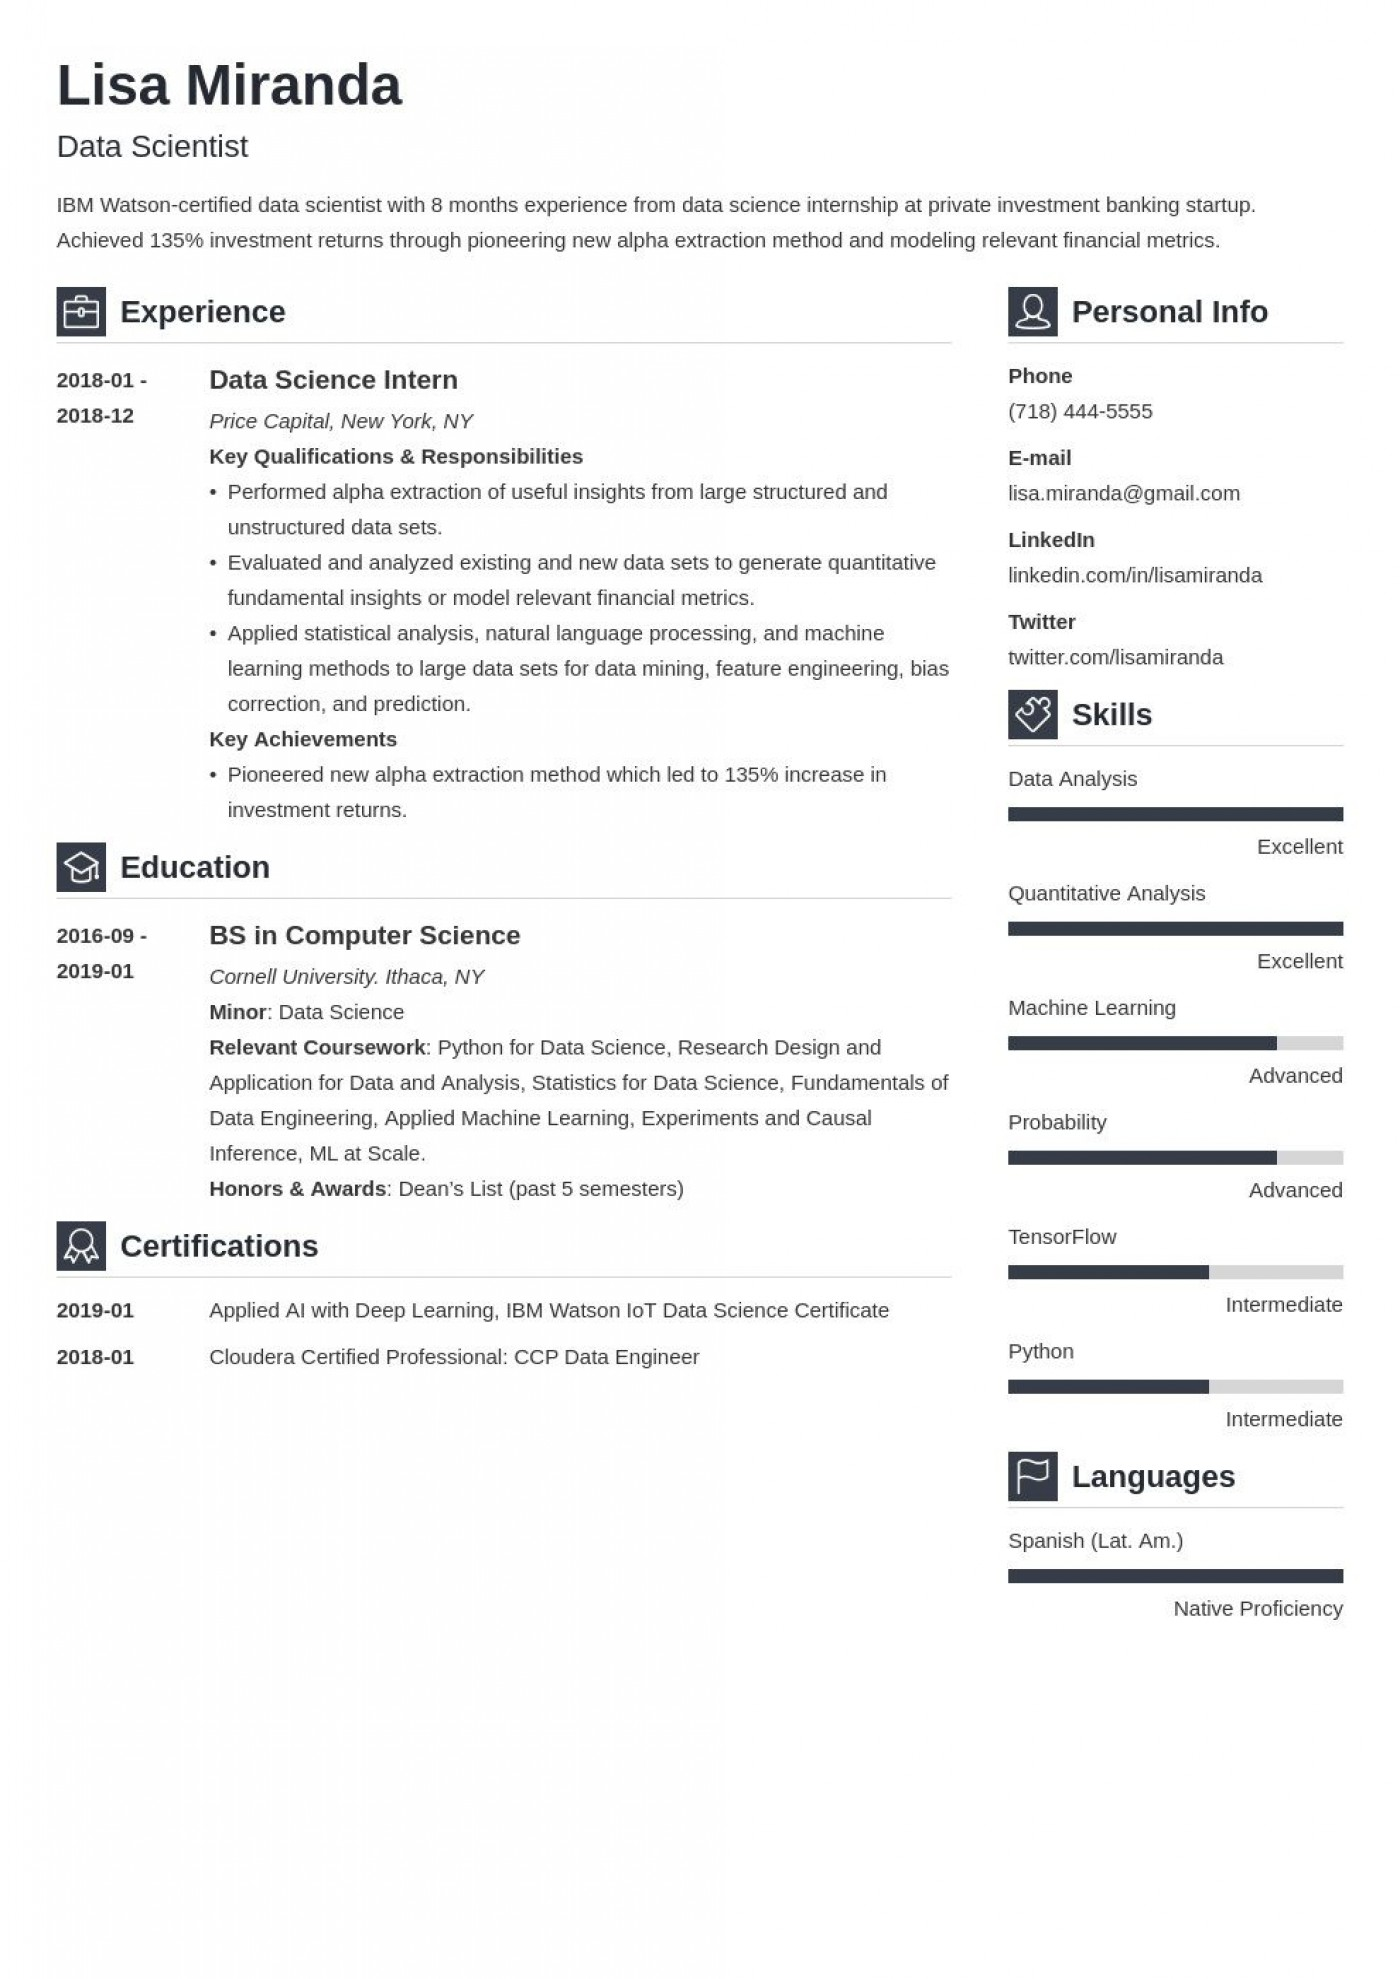 008 Awesome Recent College Graduate Resume Template Highest Clarity  Word1400